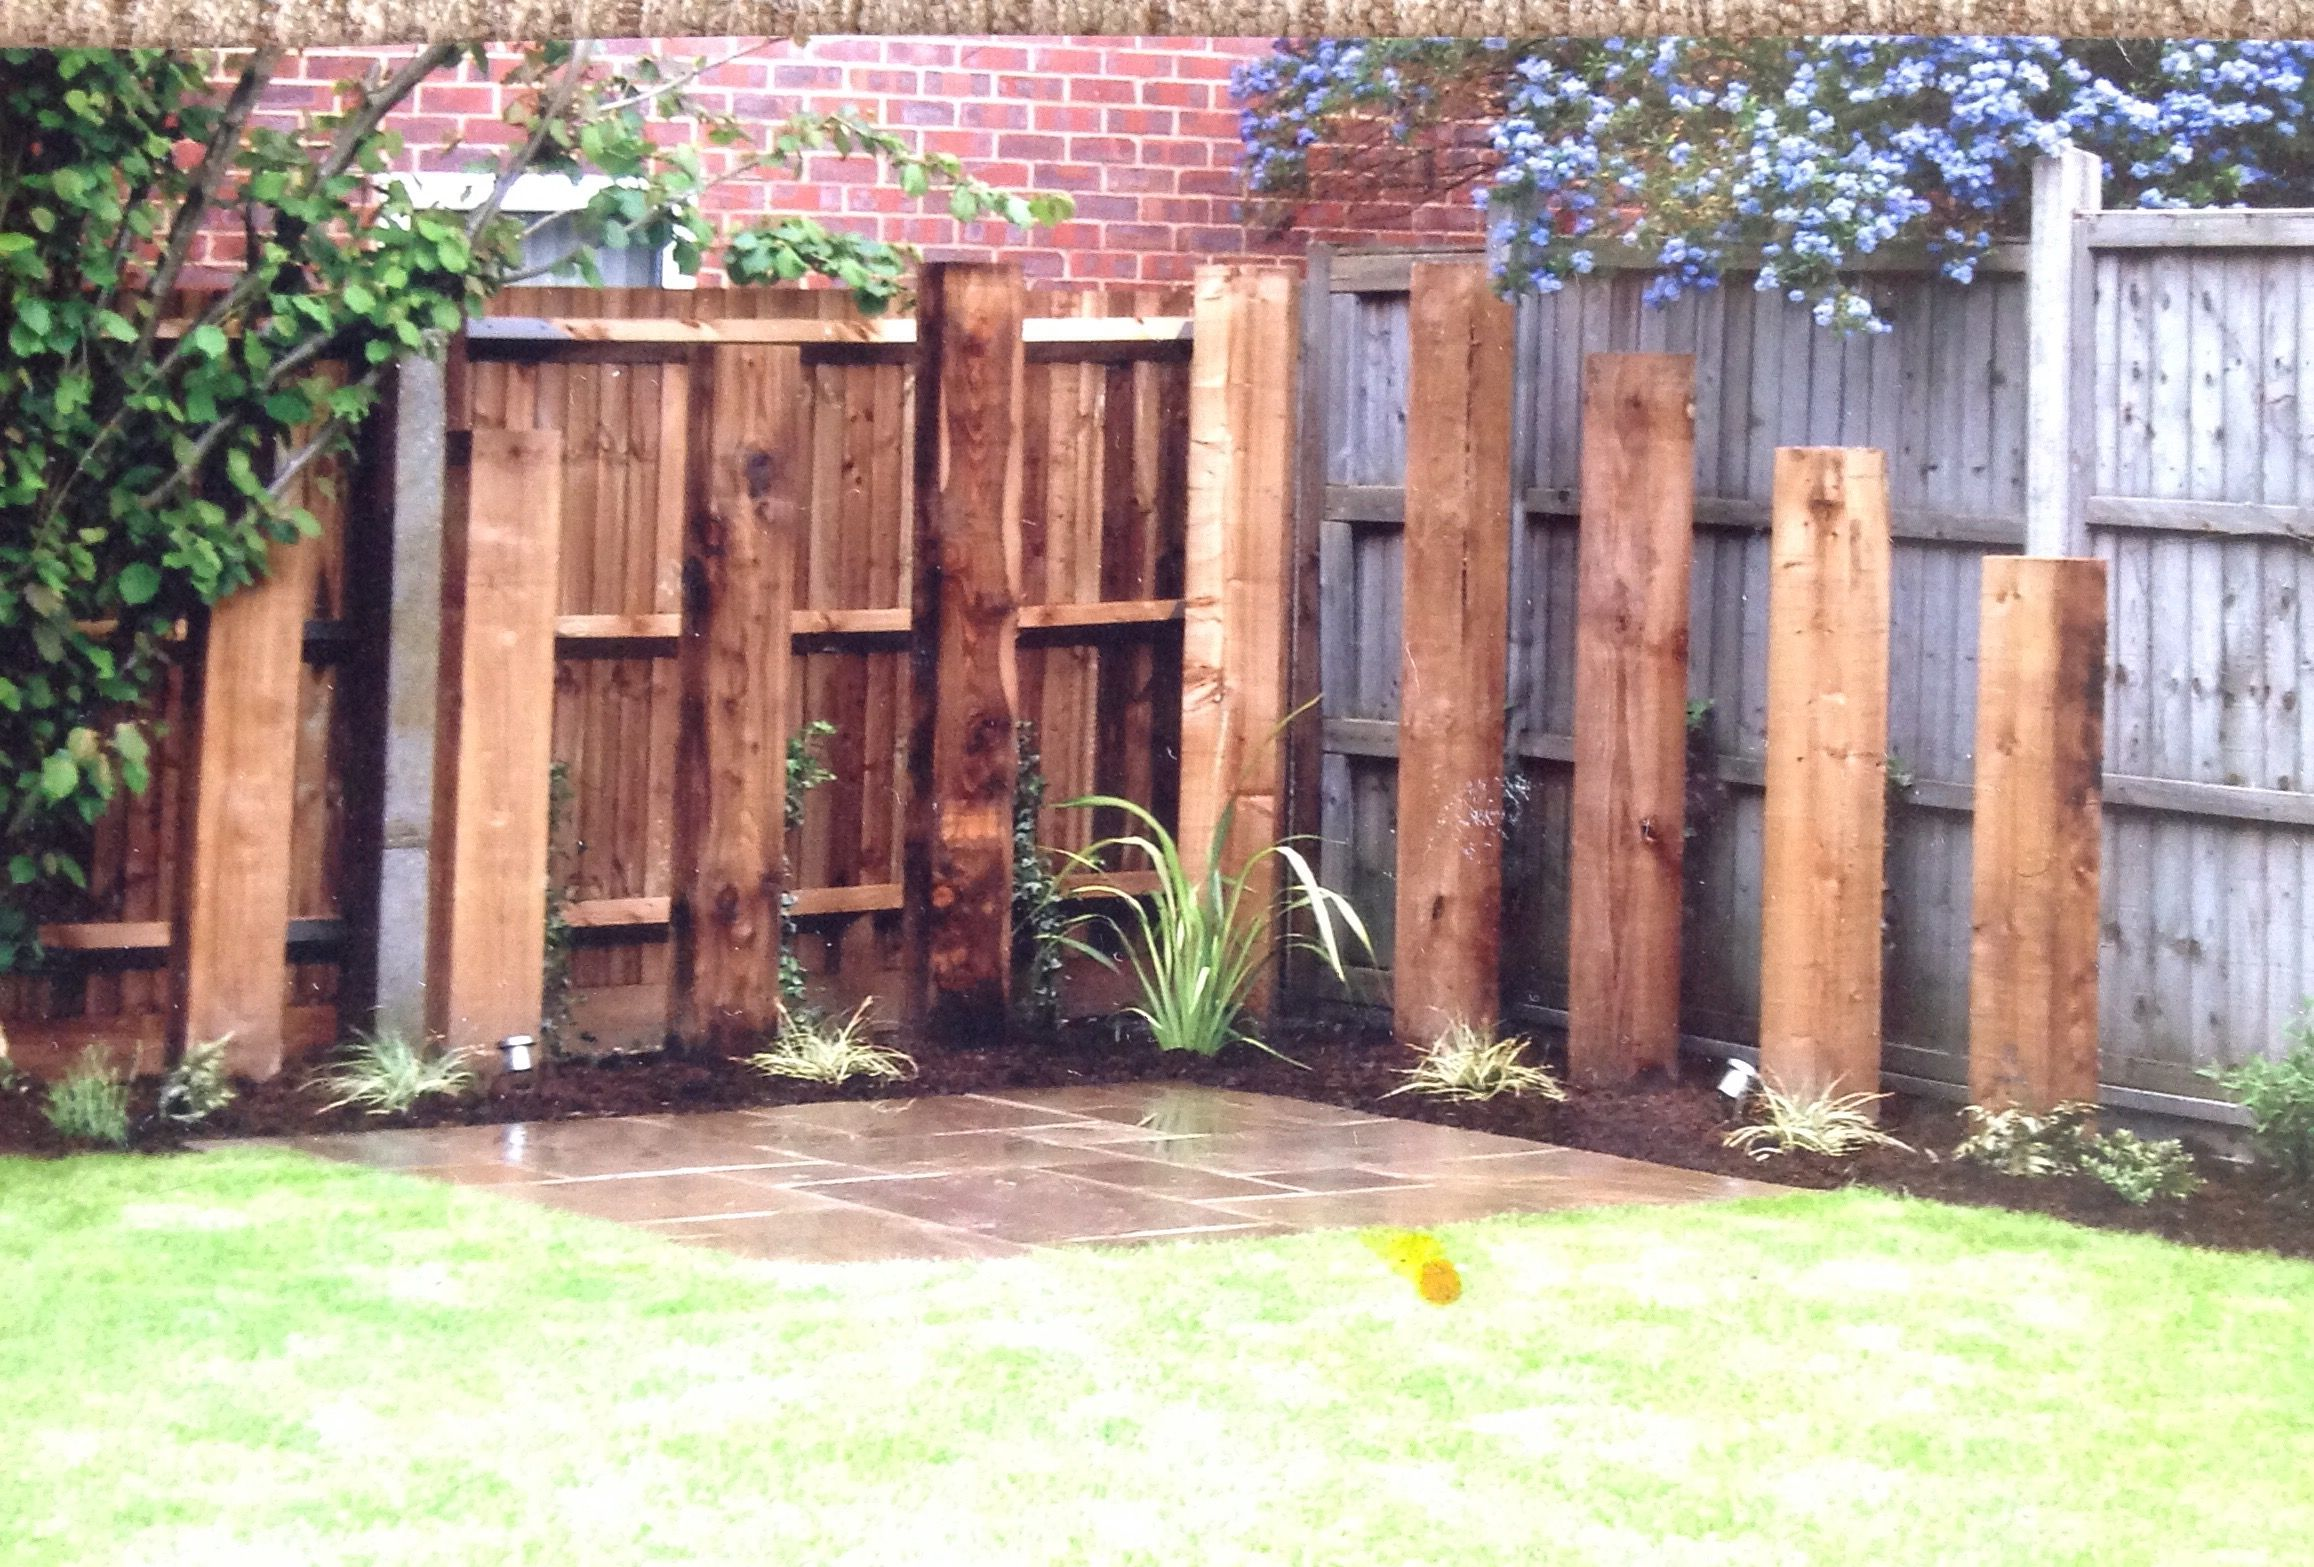 Upright railway sleepers introduce height and define the ...